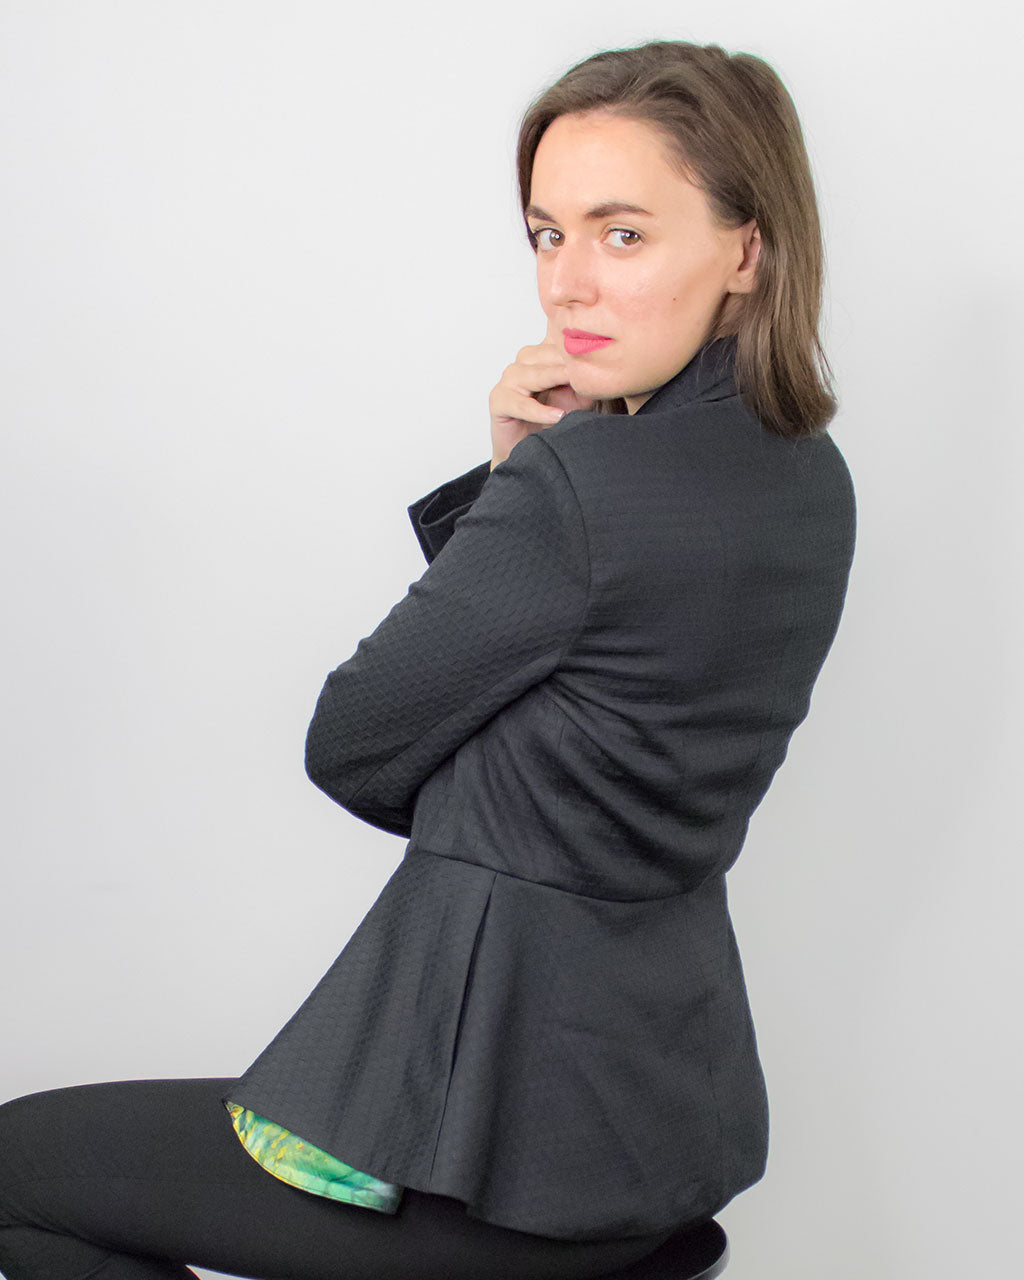 Sustainable basics by ADKN a smart peplum fitted tailored black blazer jacket with pockets made from recycled plastic bottles